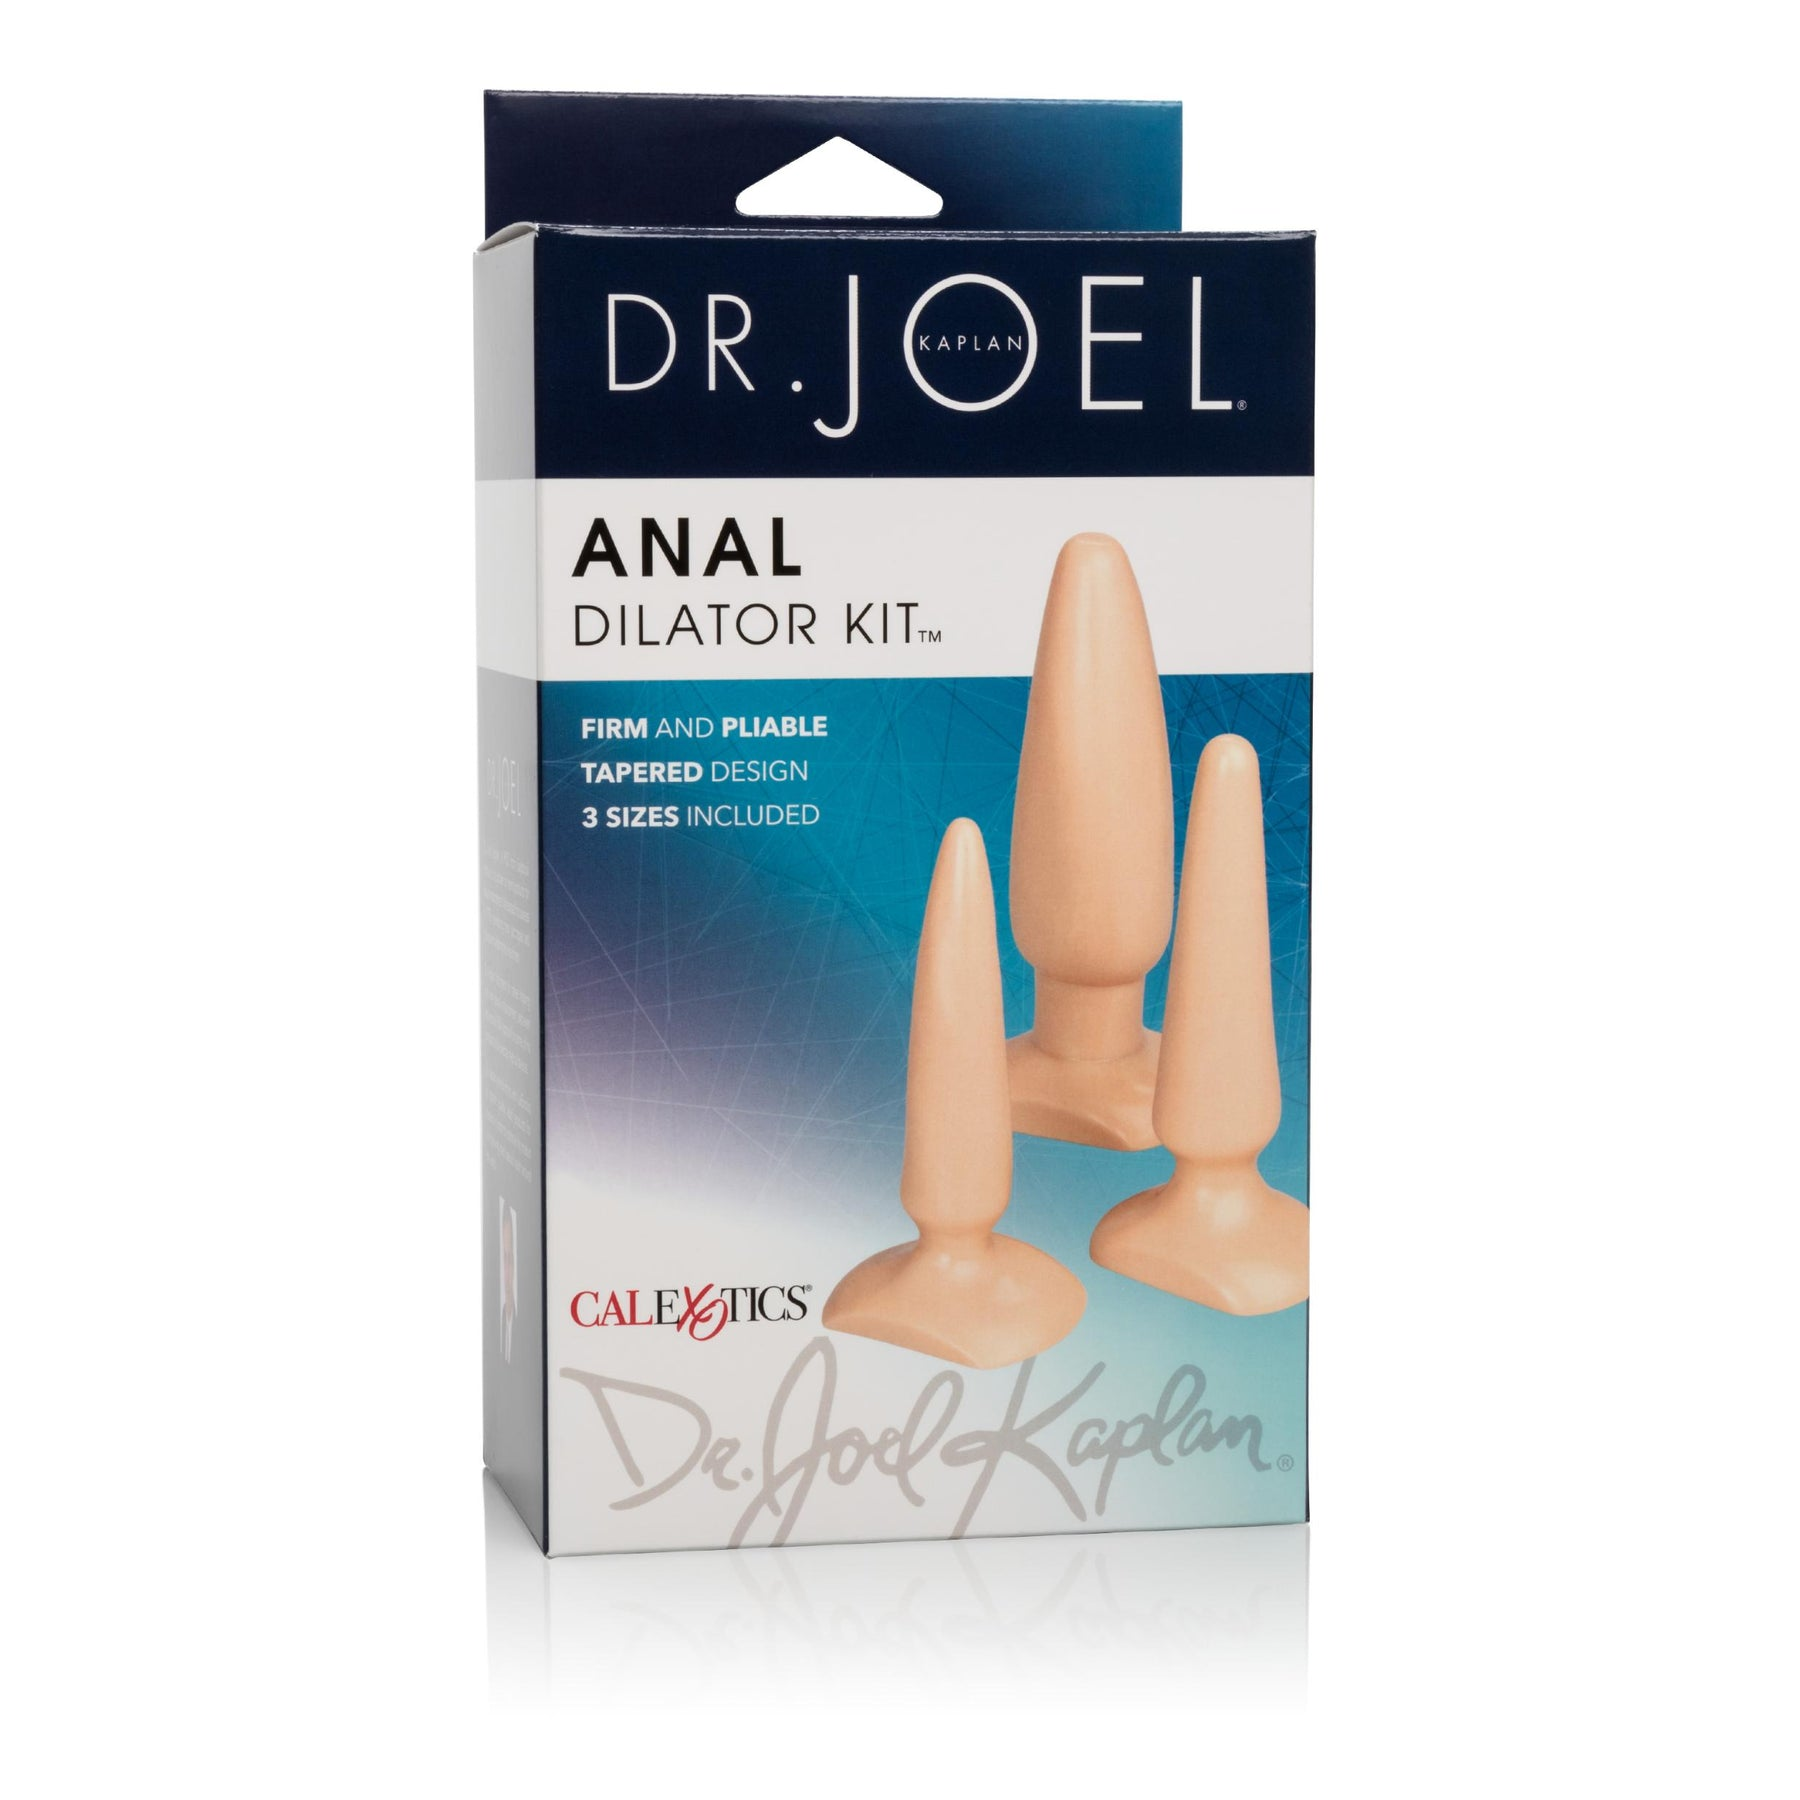 Dr. Joel's Anal Dilator Kit